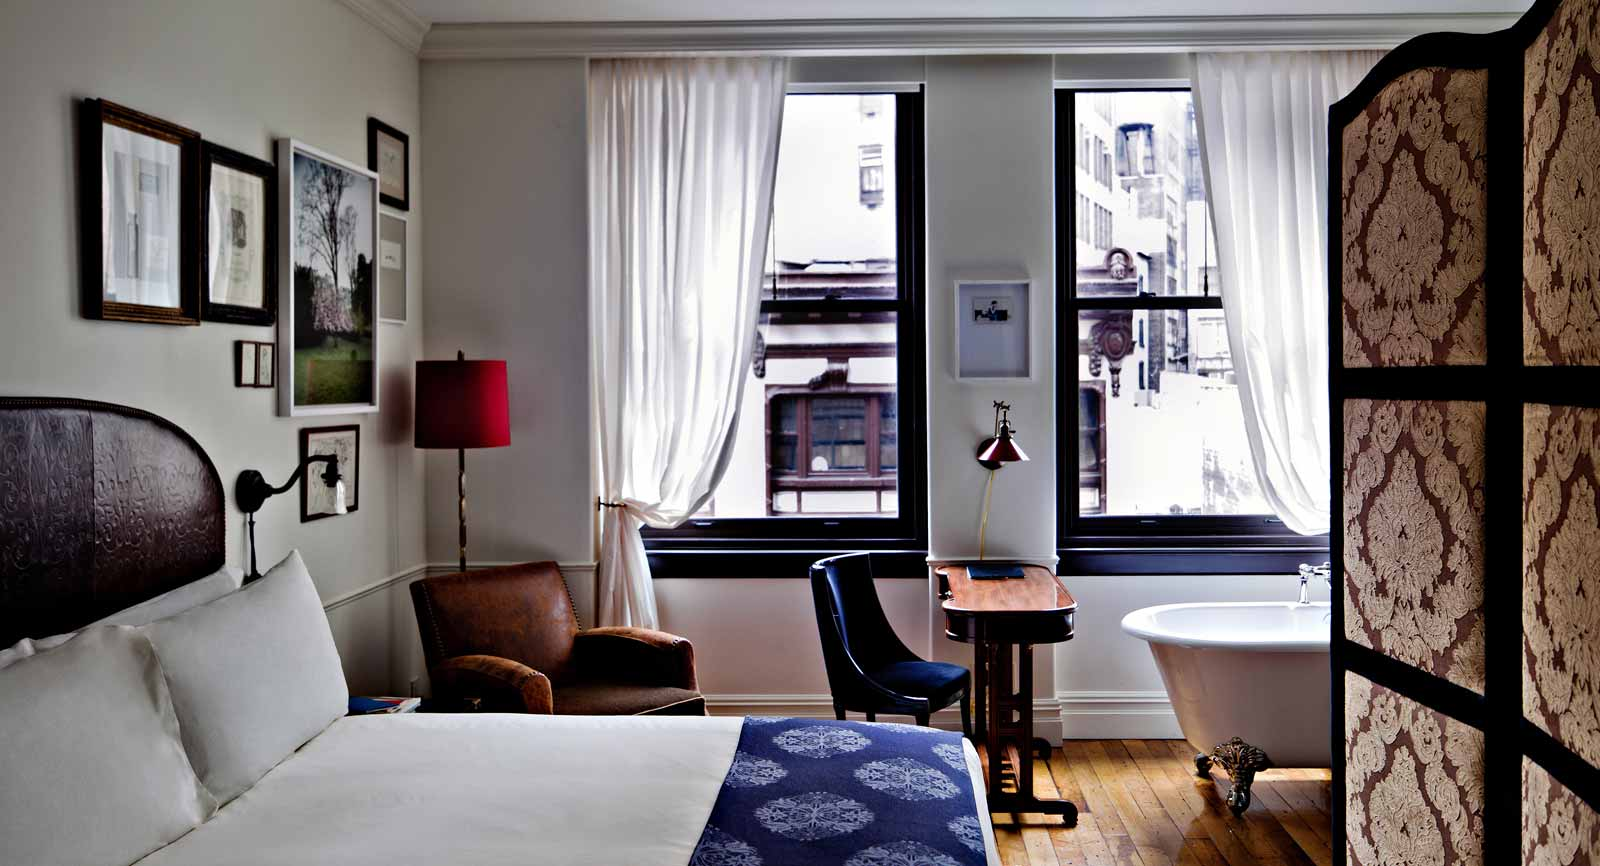 noMad hotel in new york city guide new york city guide NEW YORK CITY GUIDE nomad 3